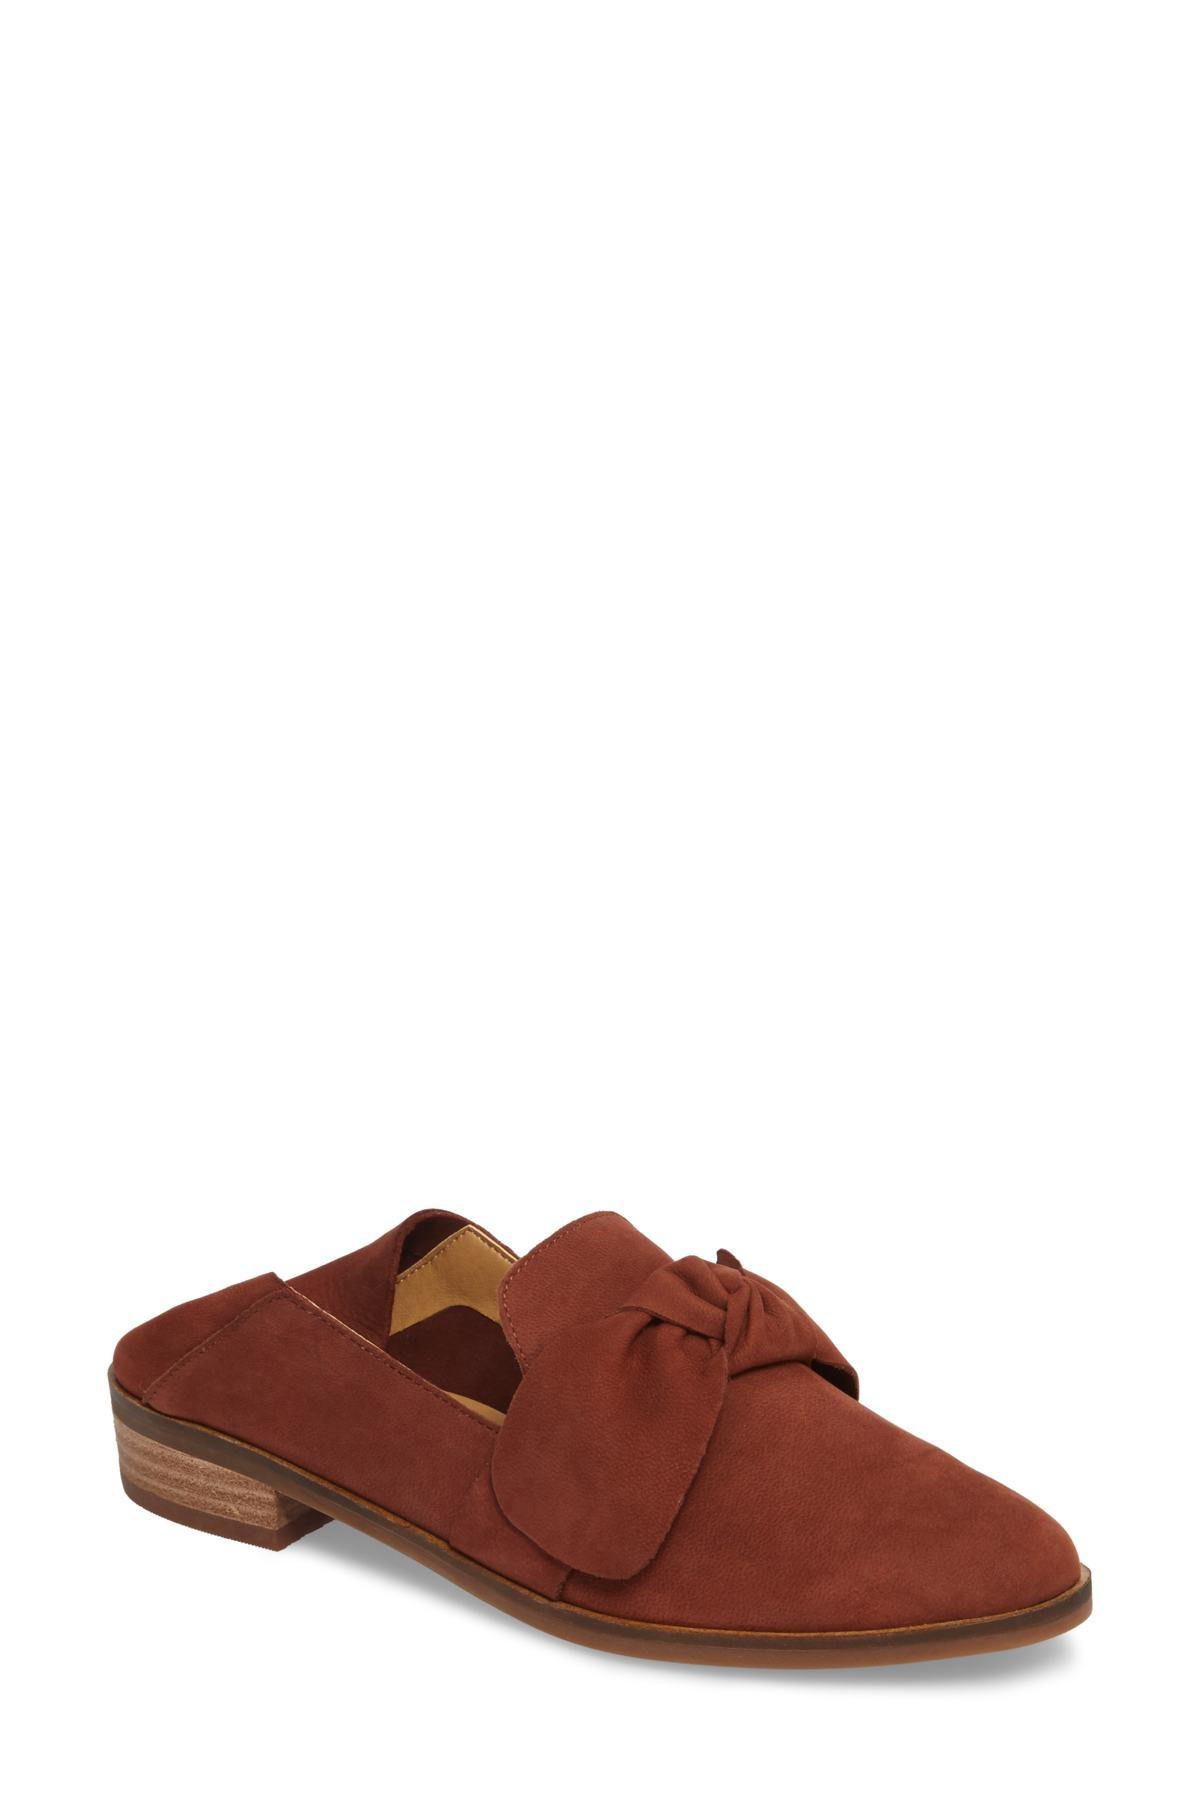 1f8ba23bbea Lyst - Lucky Brand Cozzmo Convertible Loafer (women) in Brown